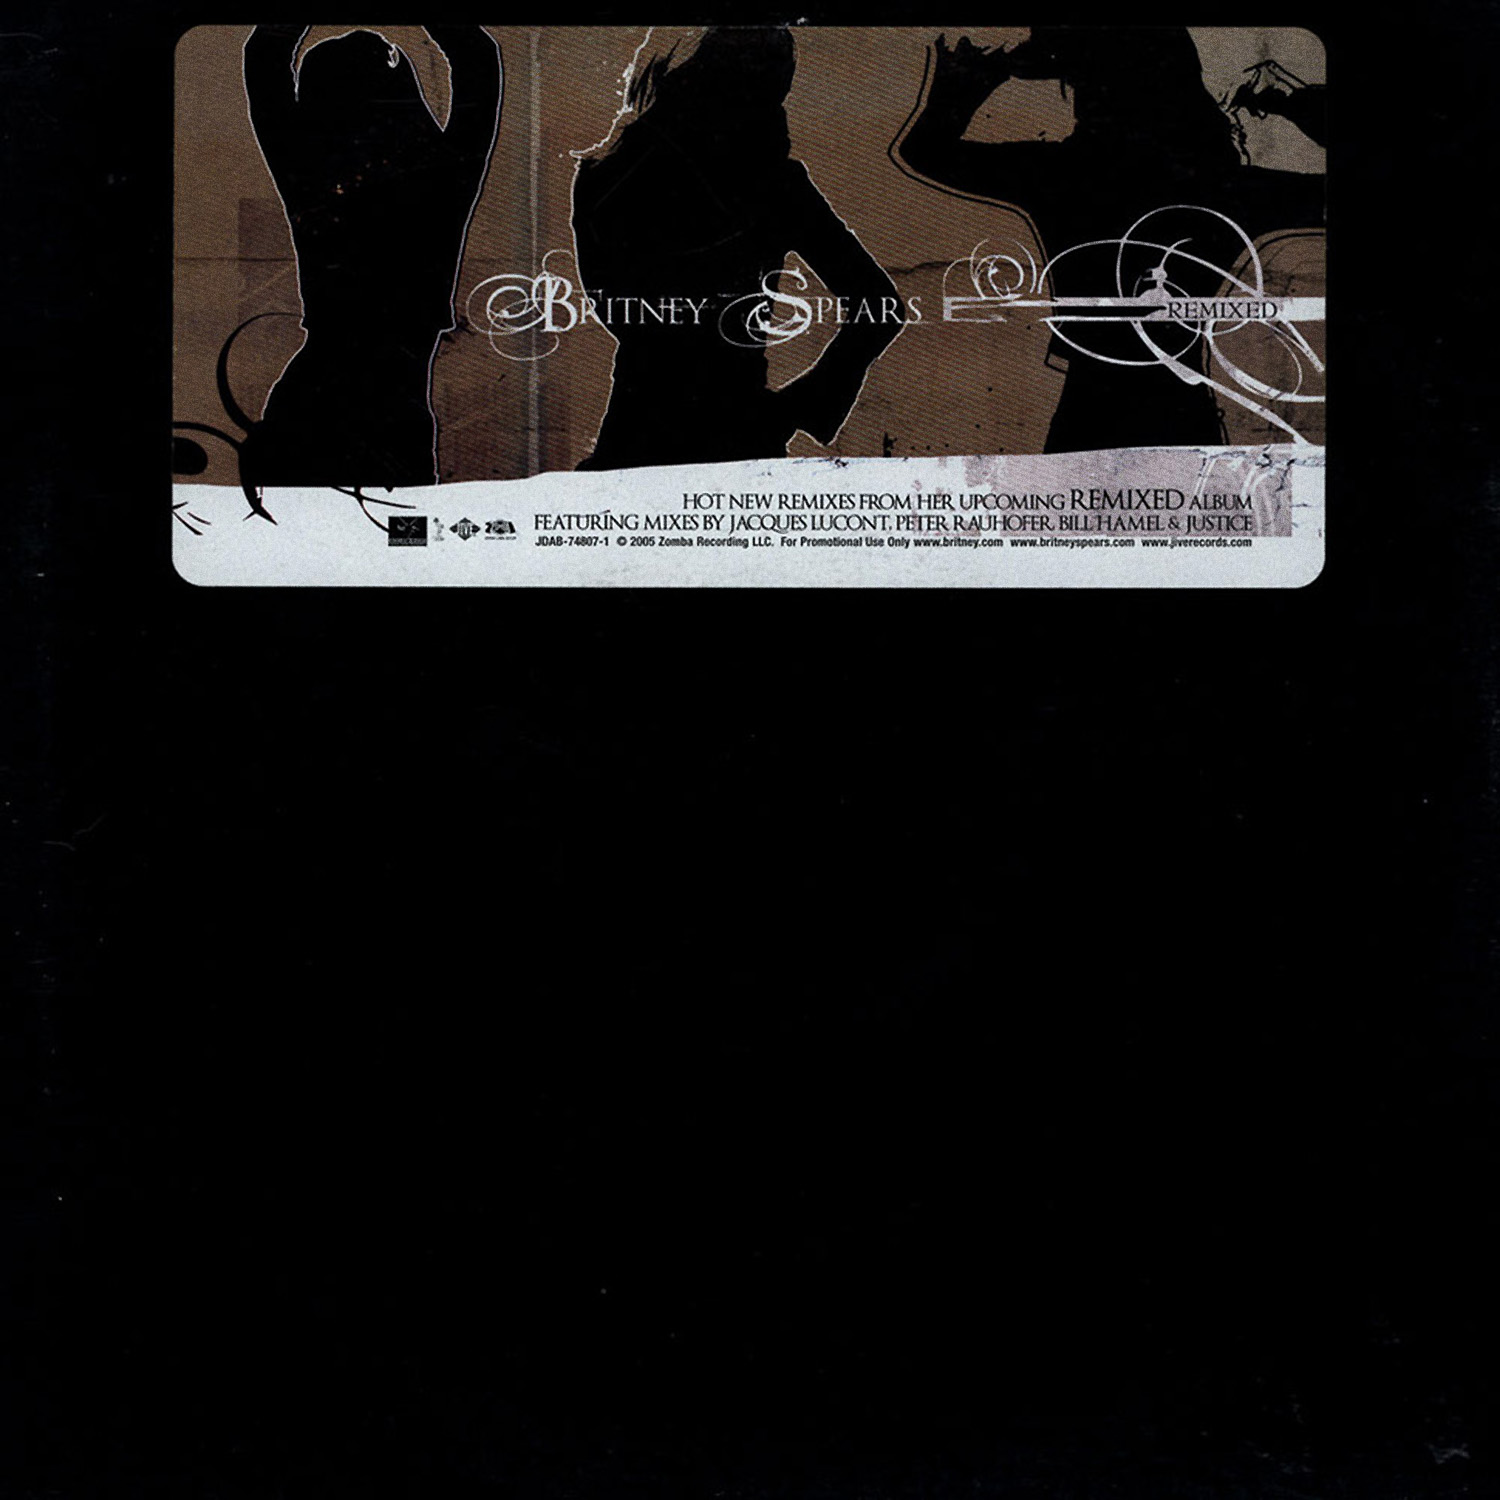 Britney Spears – Key Cuts From Remixed (Promo Vinyl 2005)